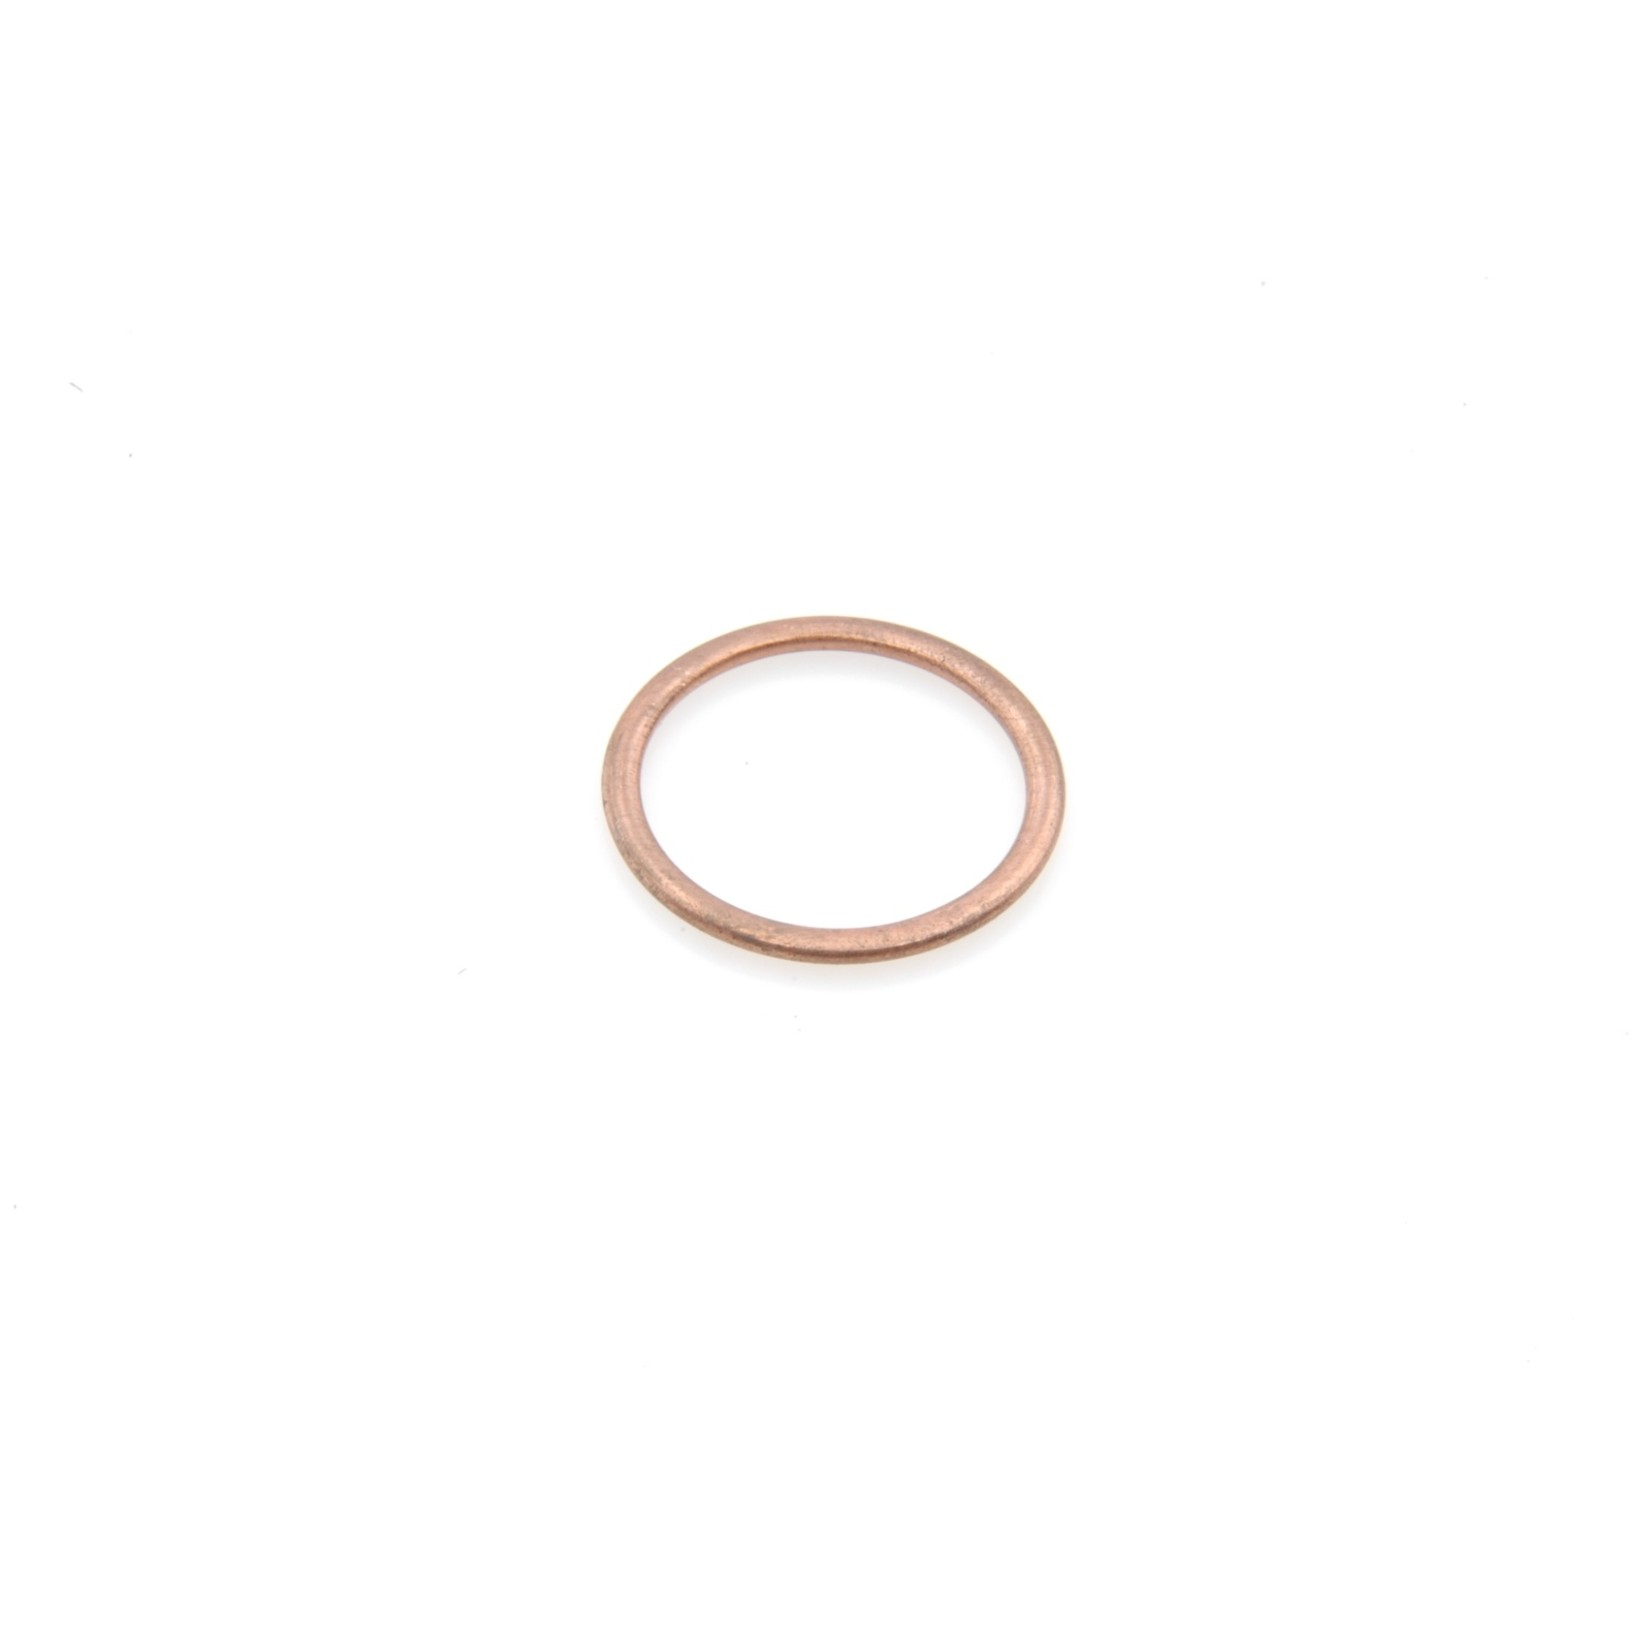 Gasket temperature contact Nr Org: 22472009